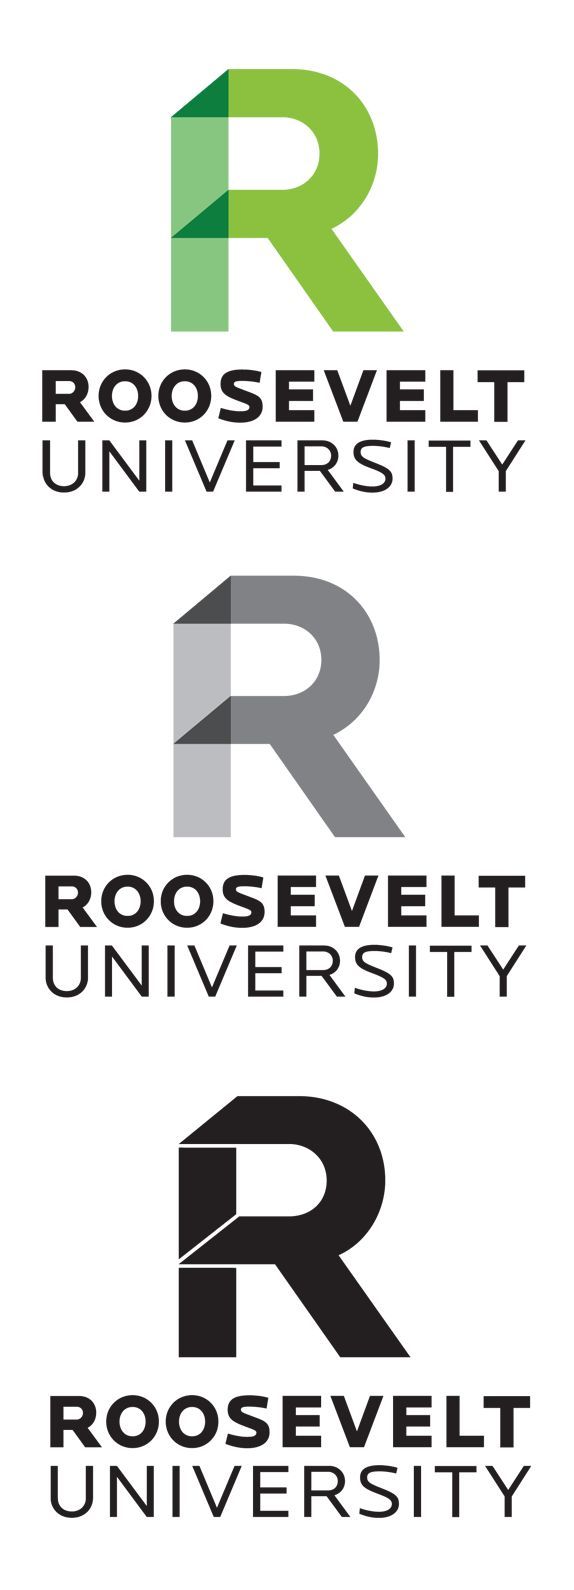 Roosevelt University / contemporary university rebrand